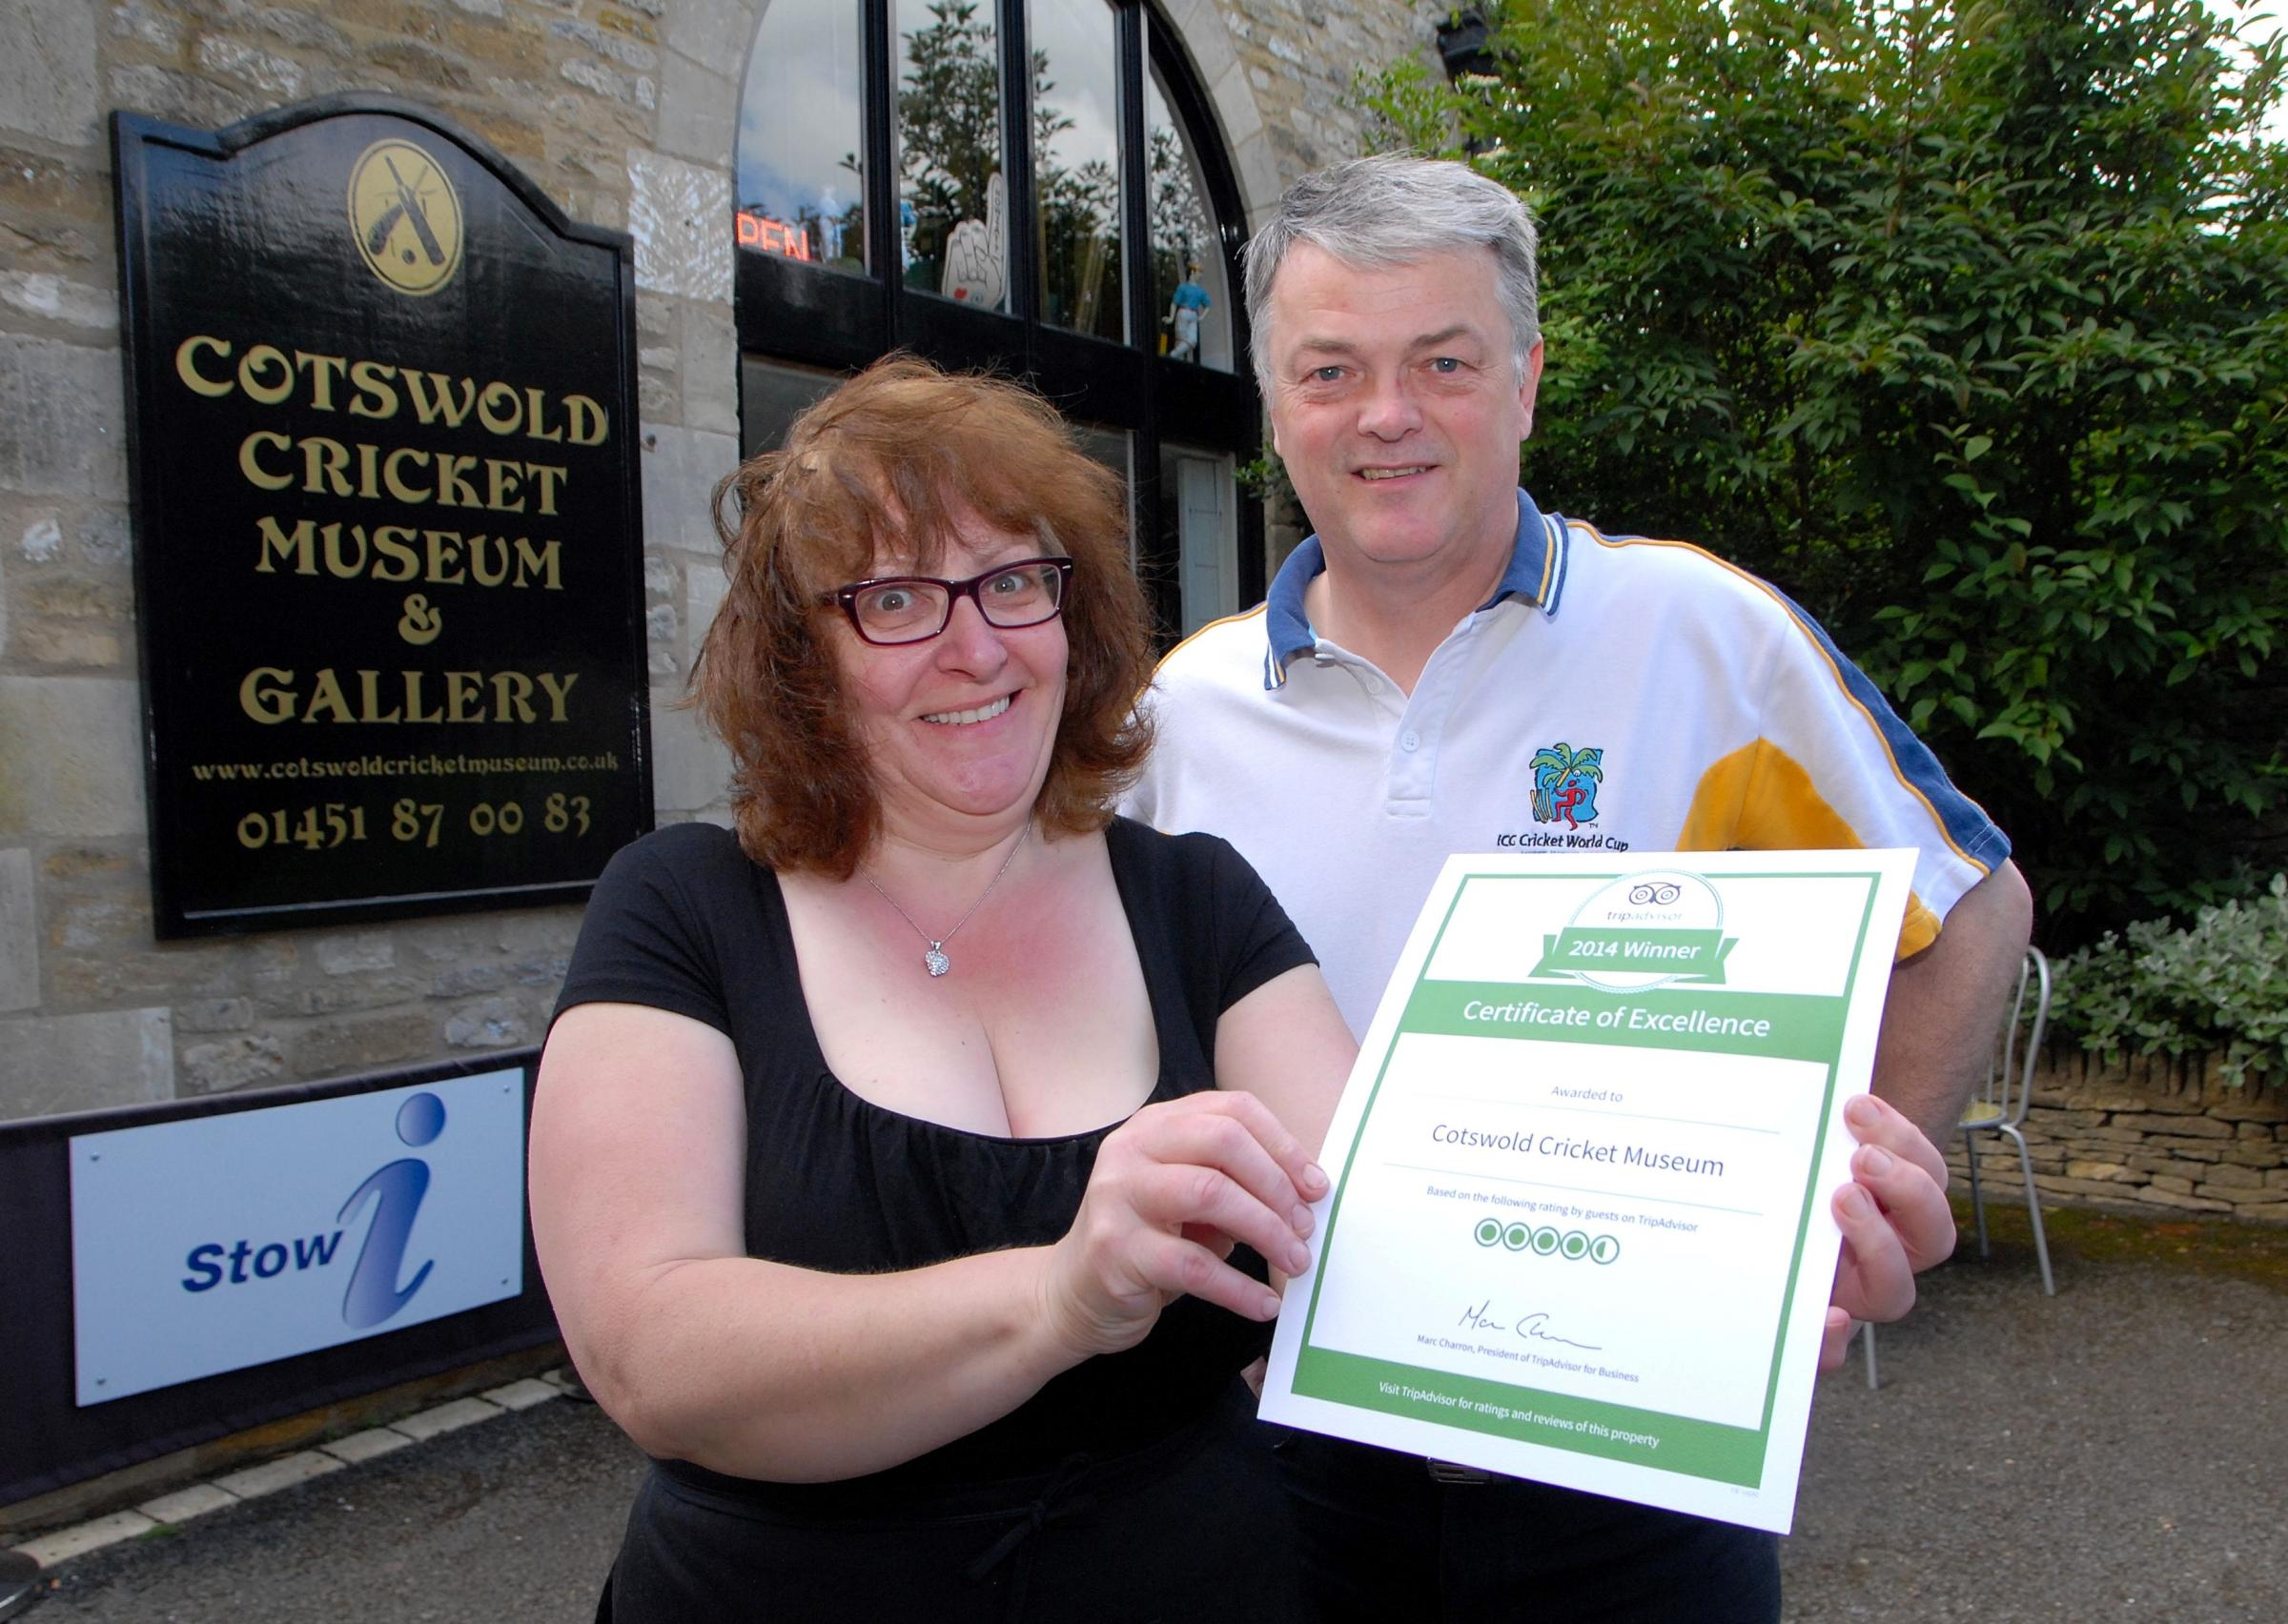 tow-on-the-Wold Cotswold Cricket Museum have been awarded a Tripadvisor certificate of excellence. From left - Marian and Andy Collier. (7029626)